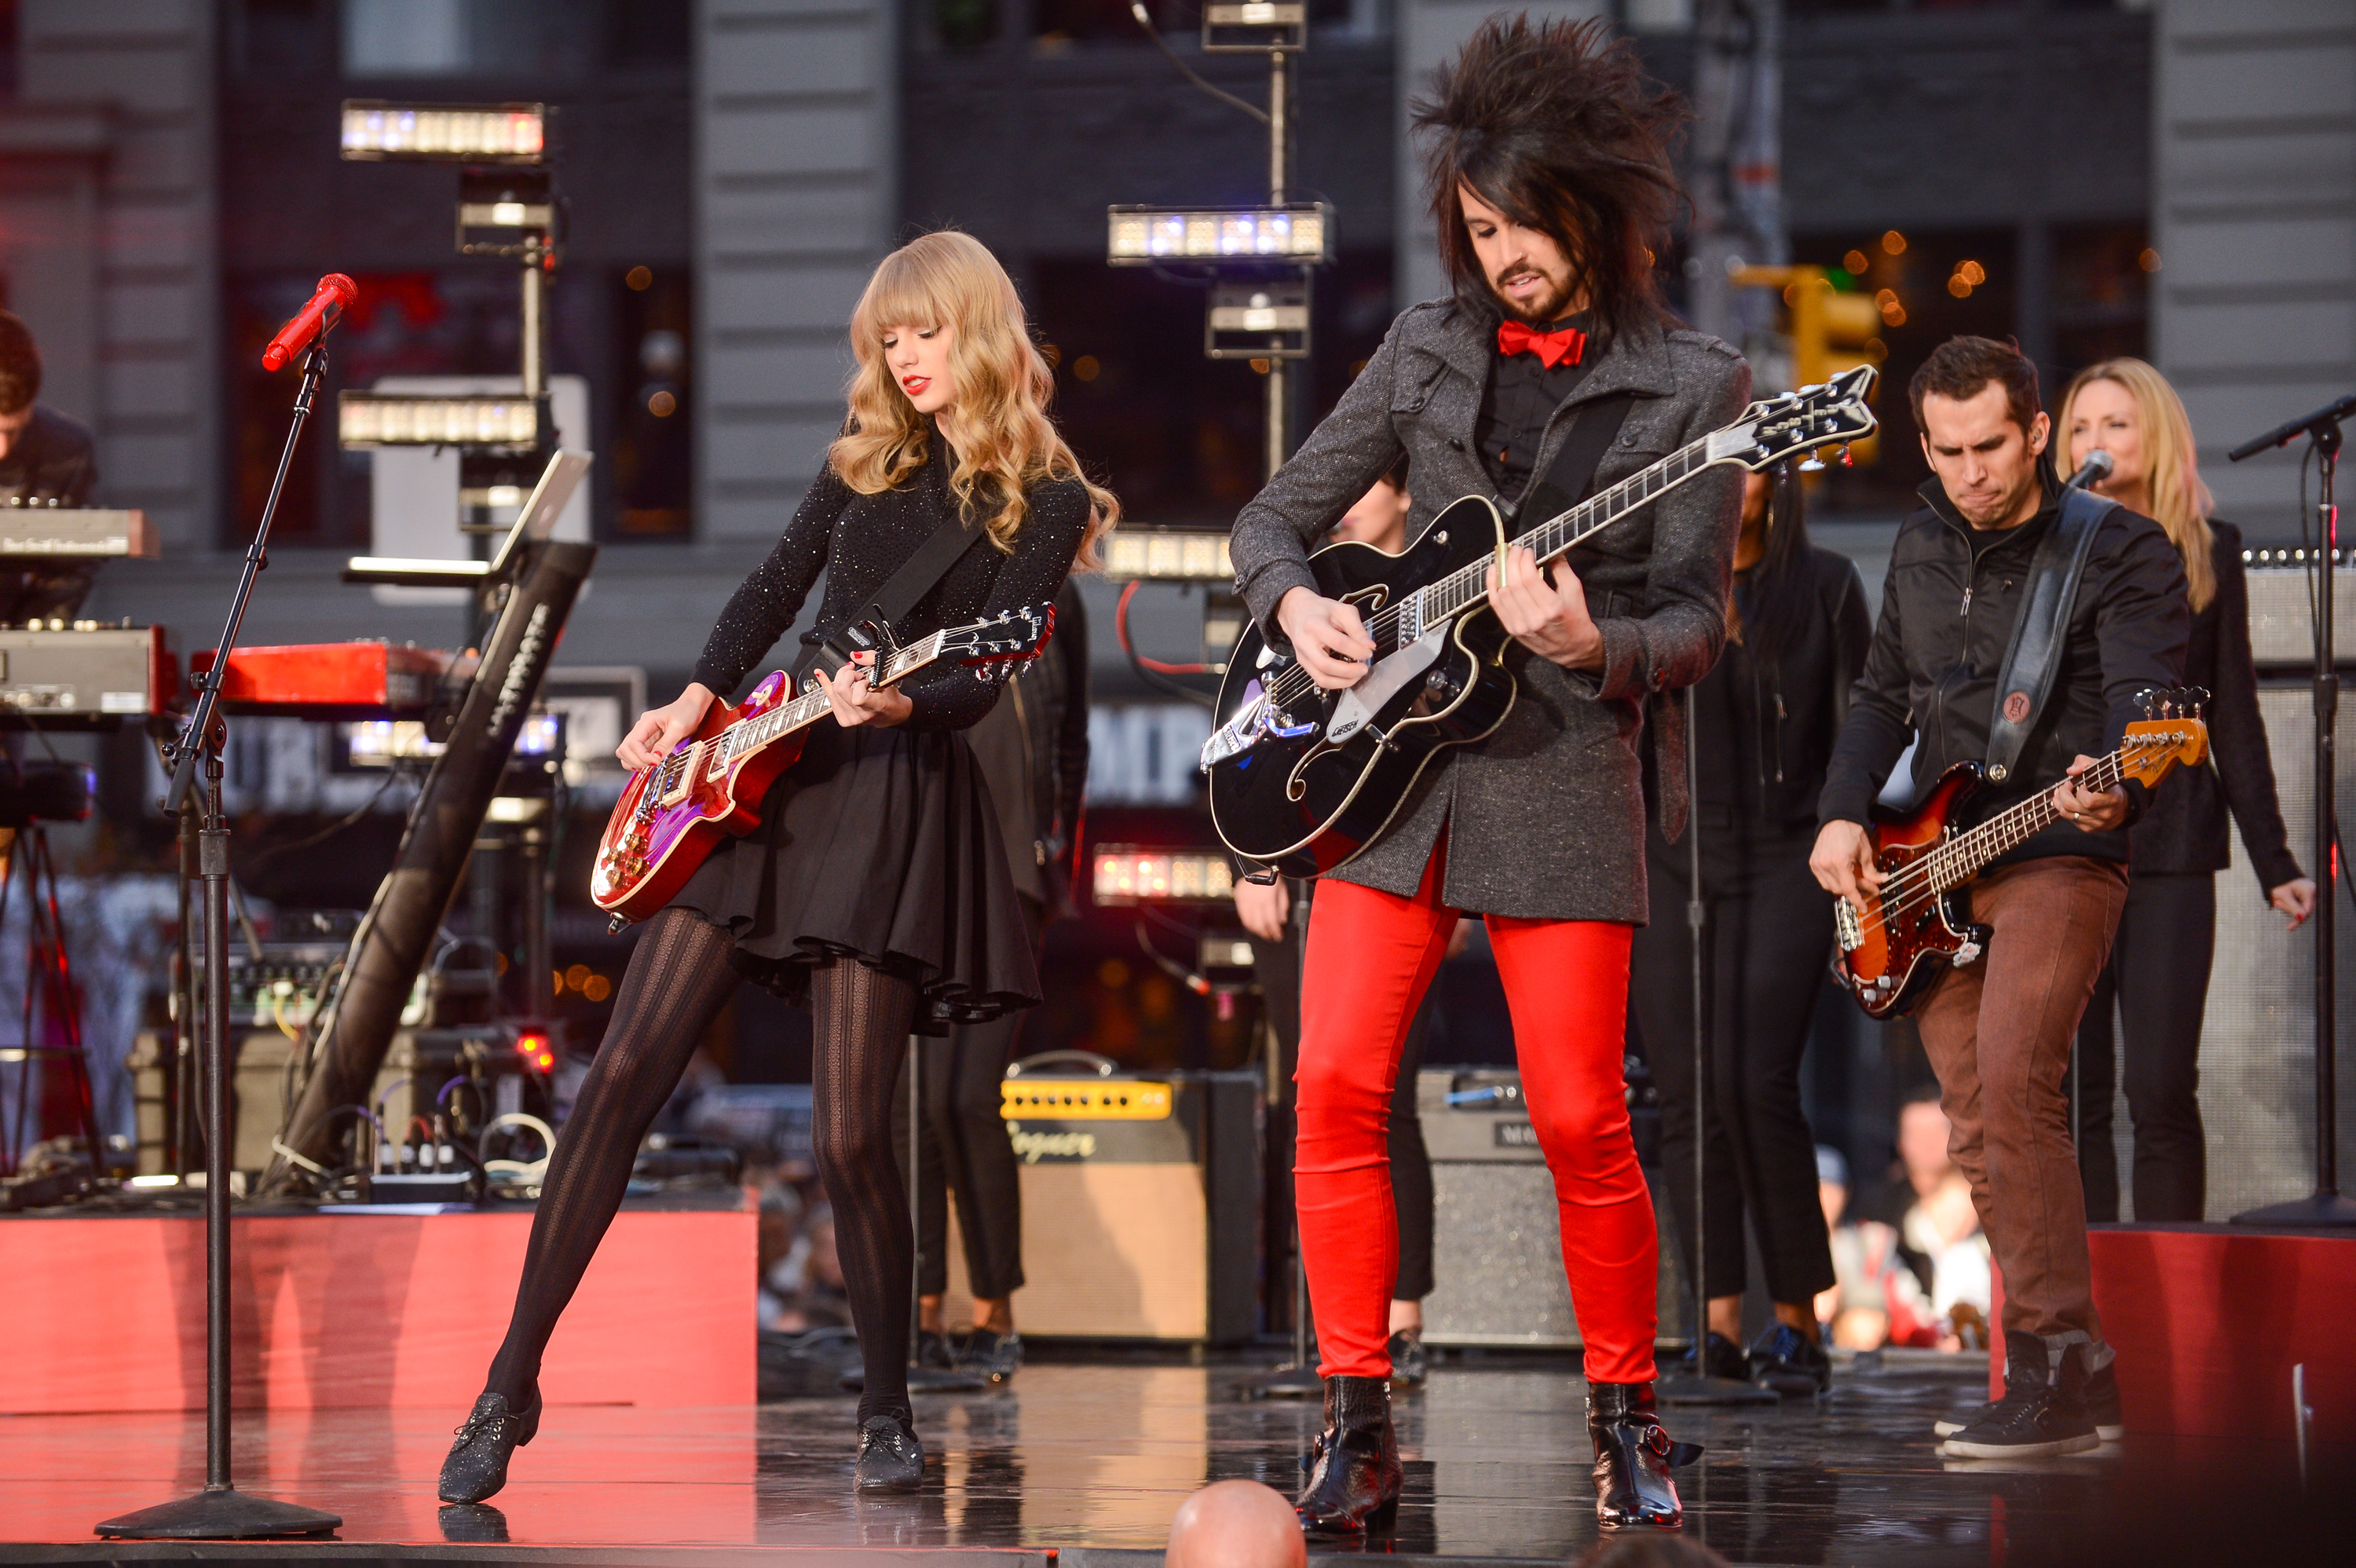 Taylor Swift Takes Over NYC